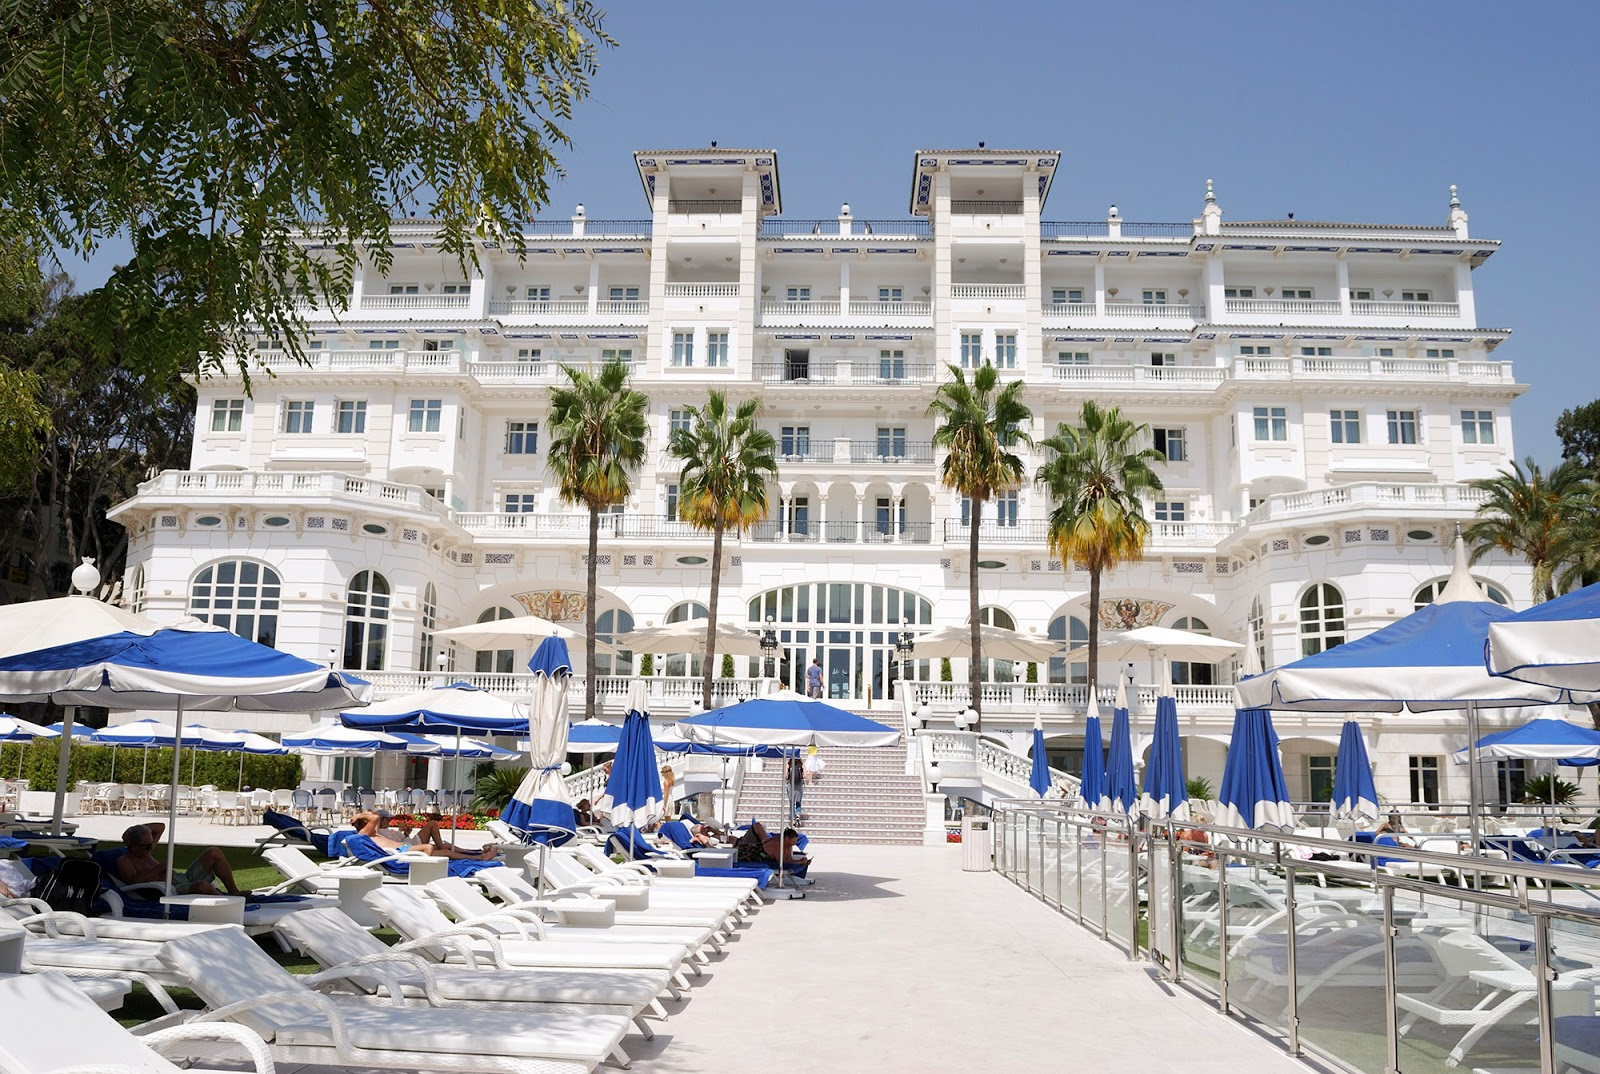 gran hotel miramar malaga resort hotel beach spain andalusia coast southern destination